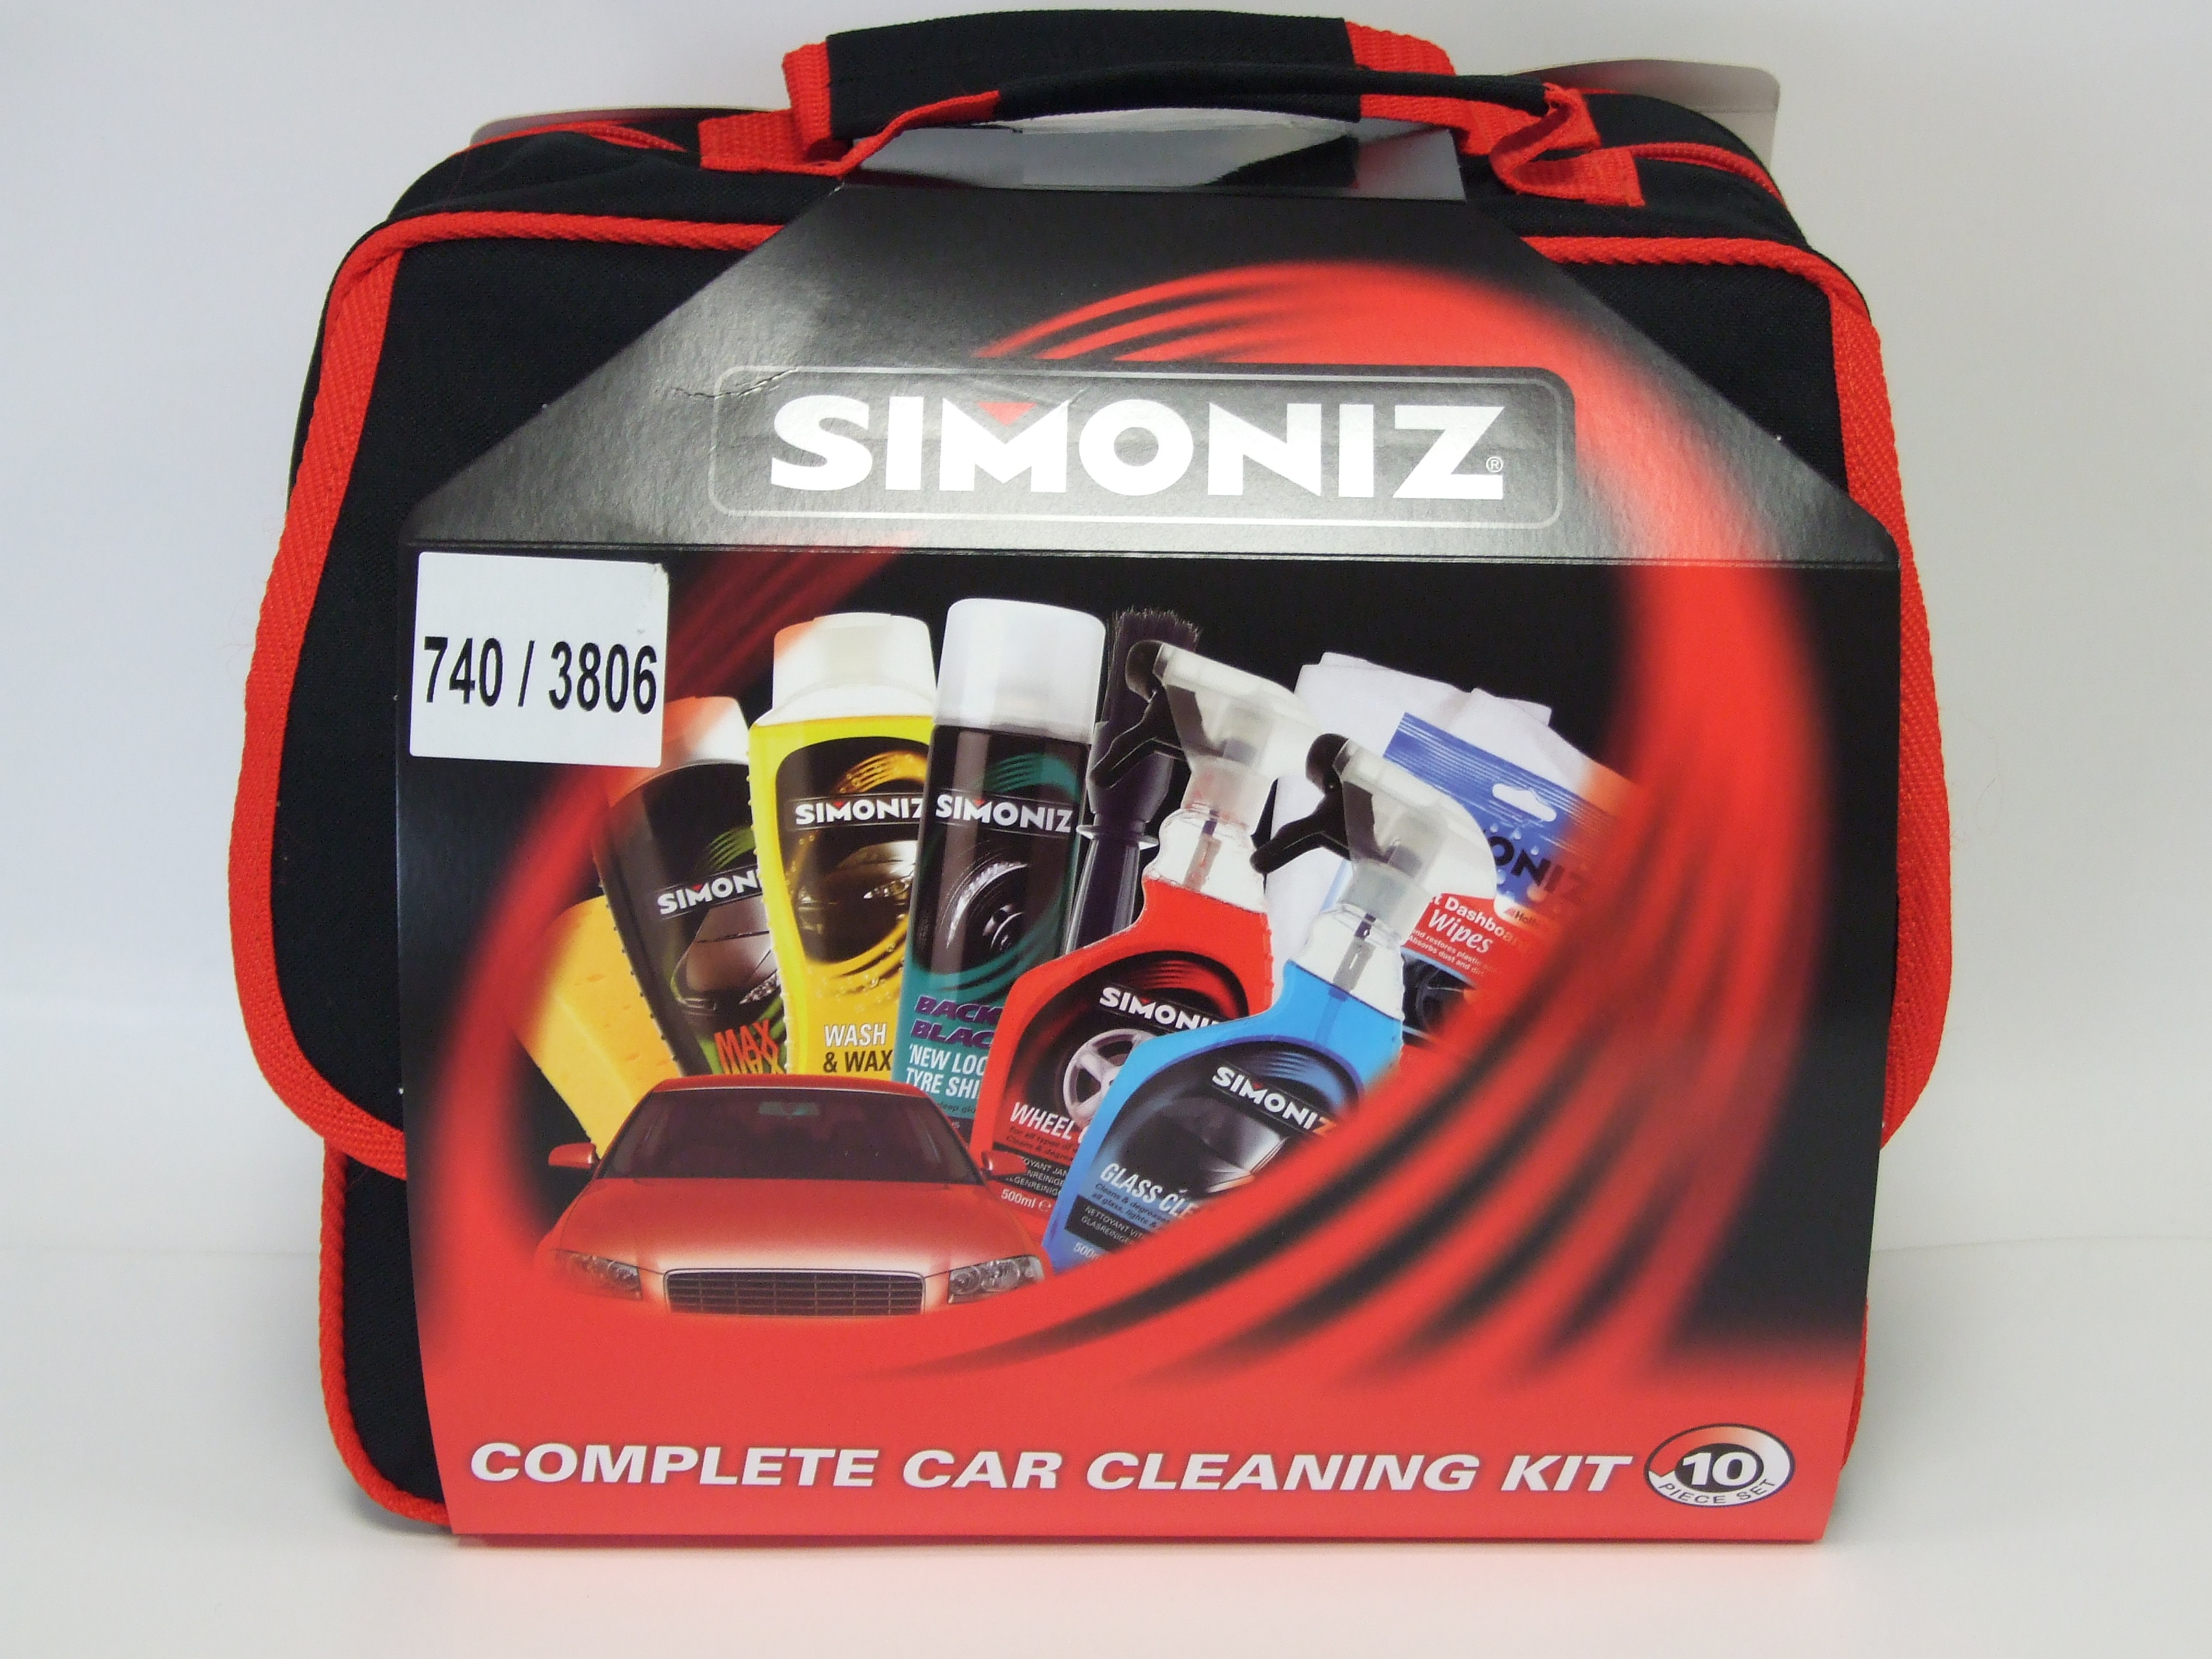 Simoniz Car Cleaning Kit